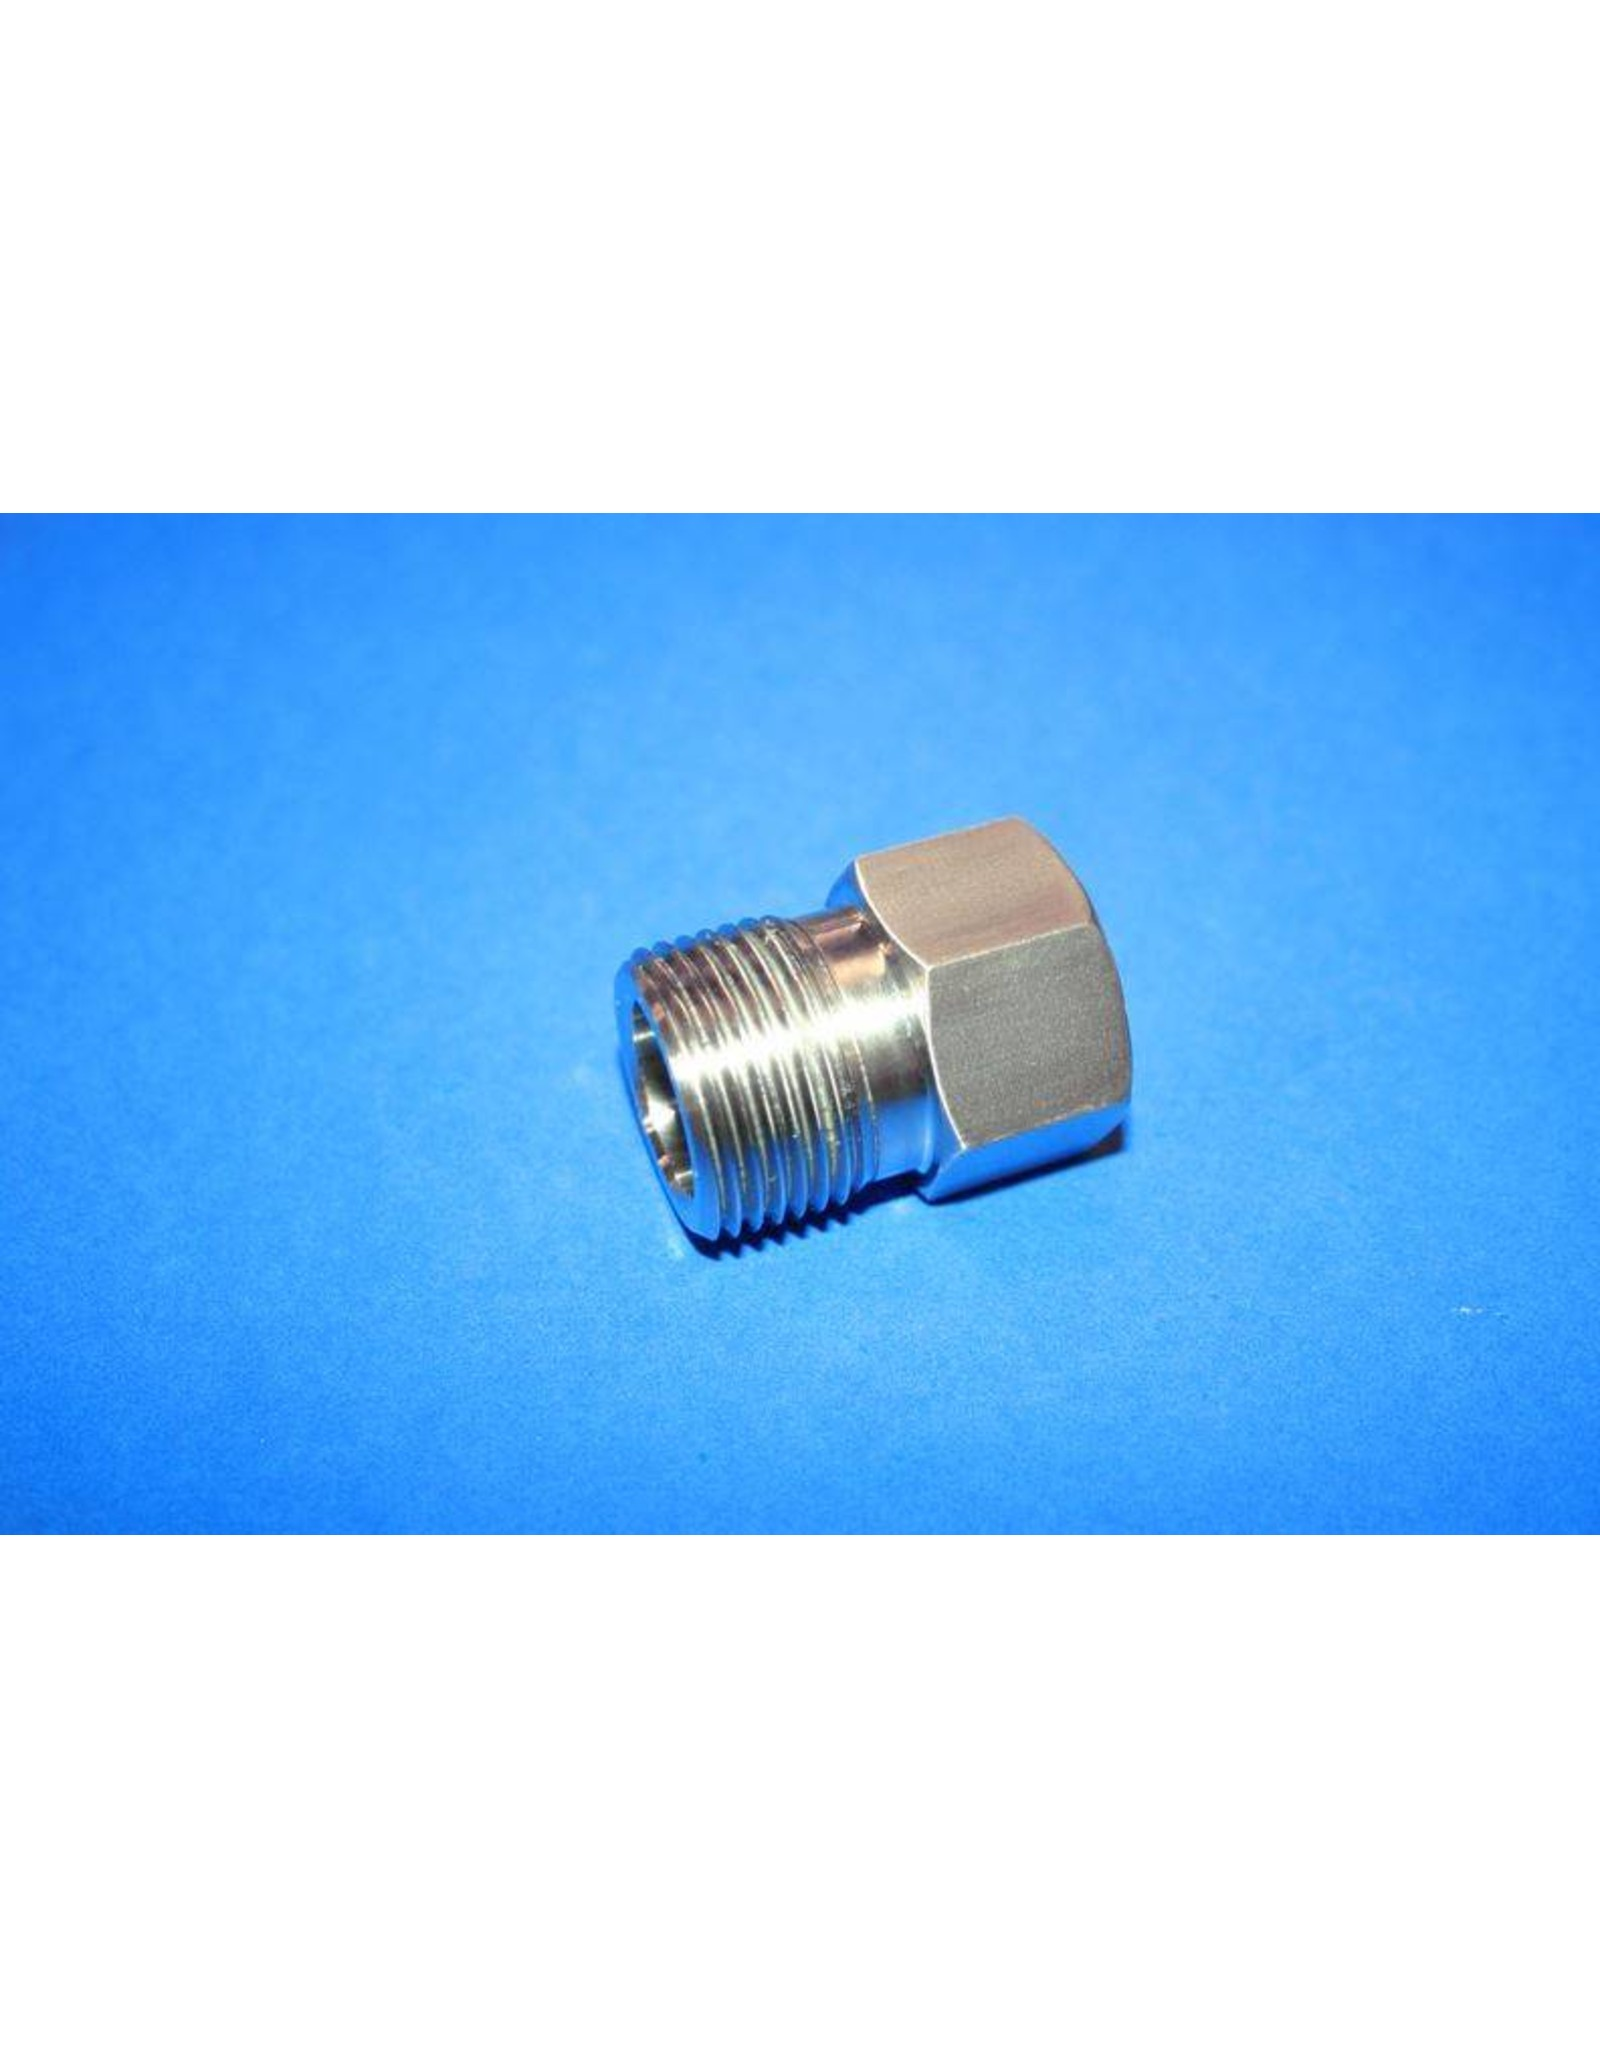 KMT Style Gland Nut, Abrasive Cutting Head Assembly